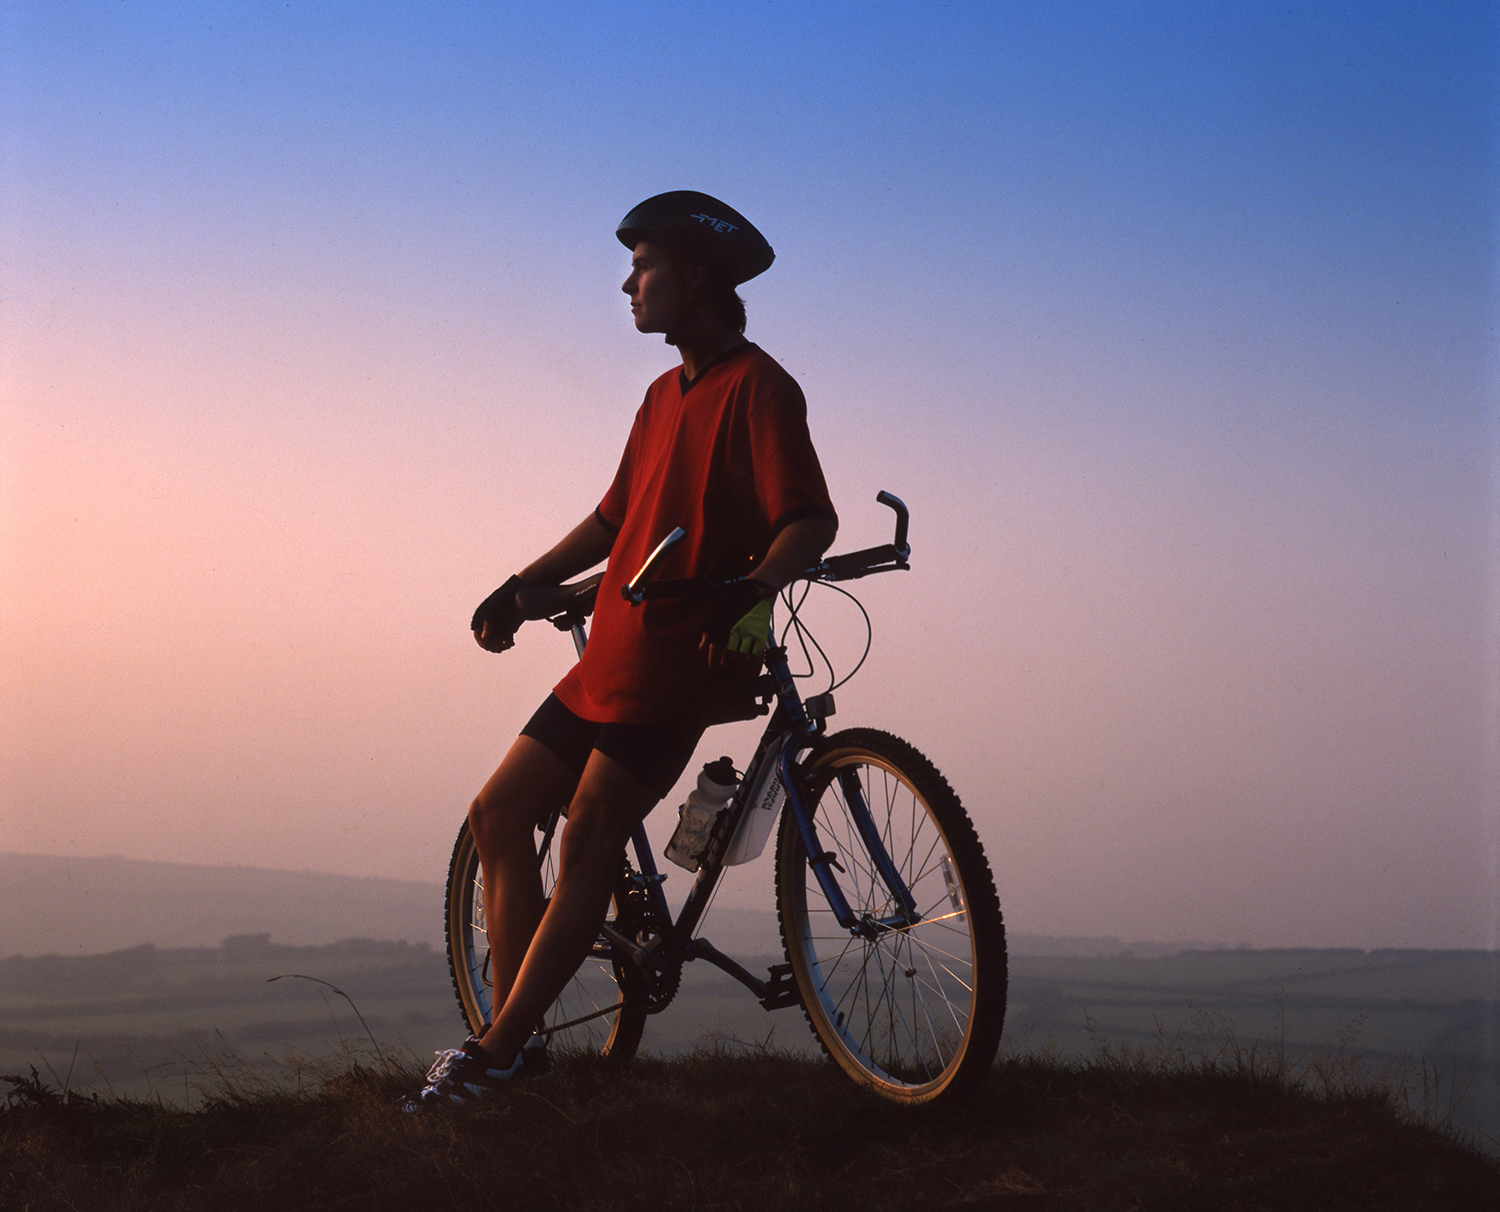 Bike rider in an evening setting to promote John Russell People Photography